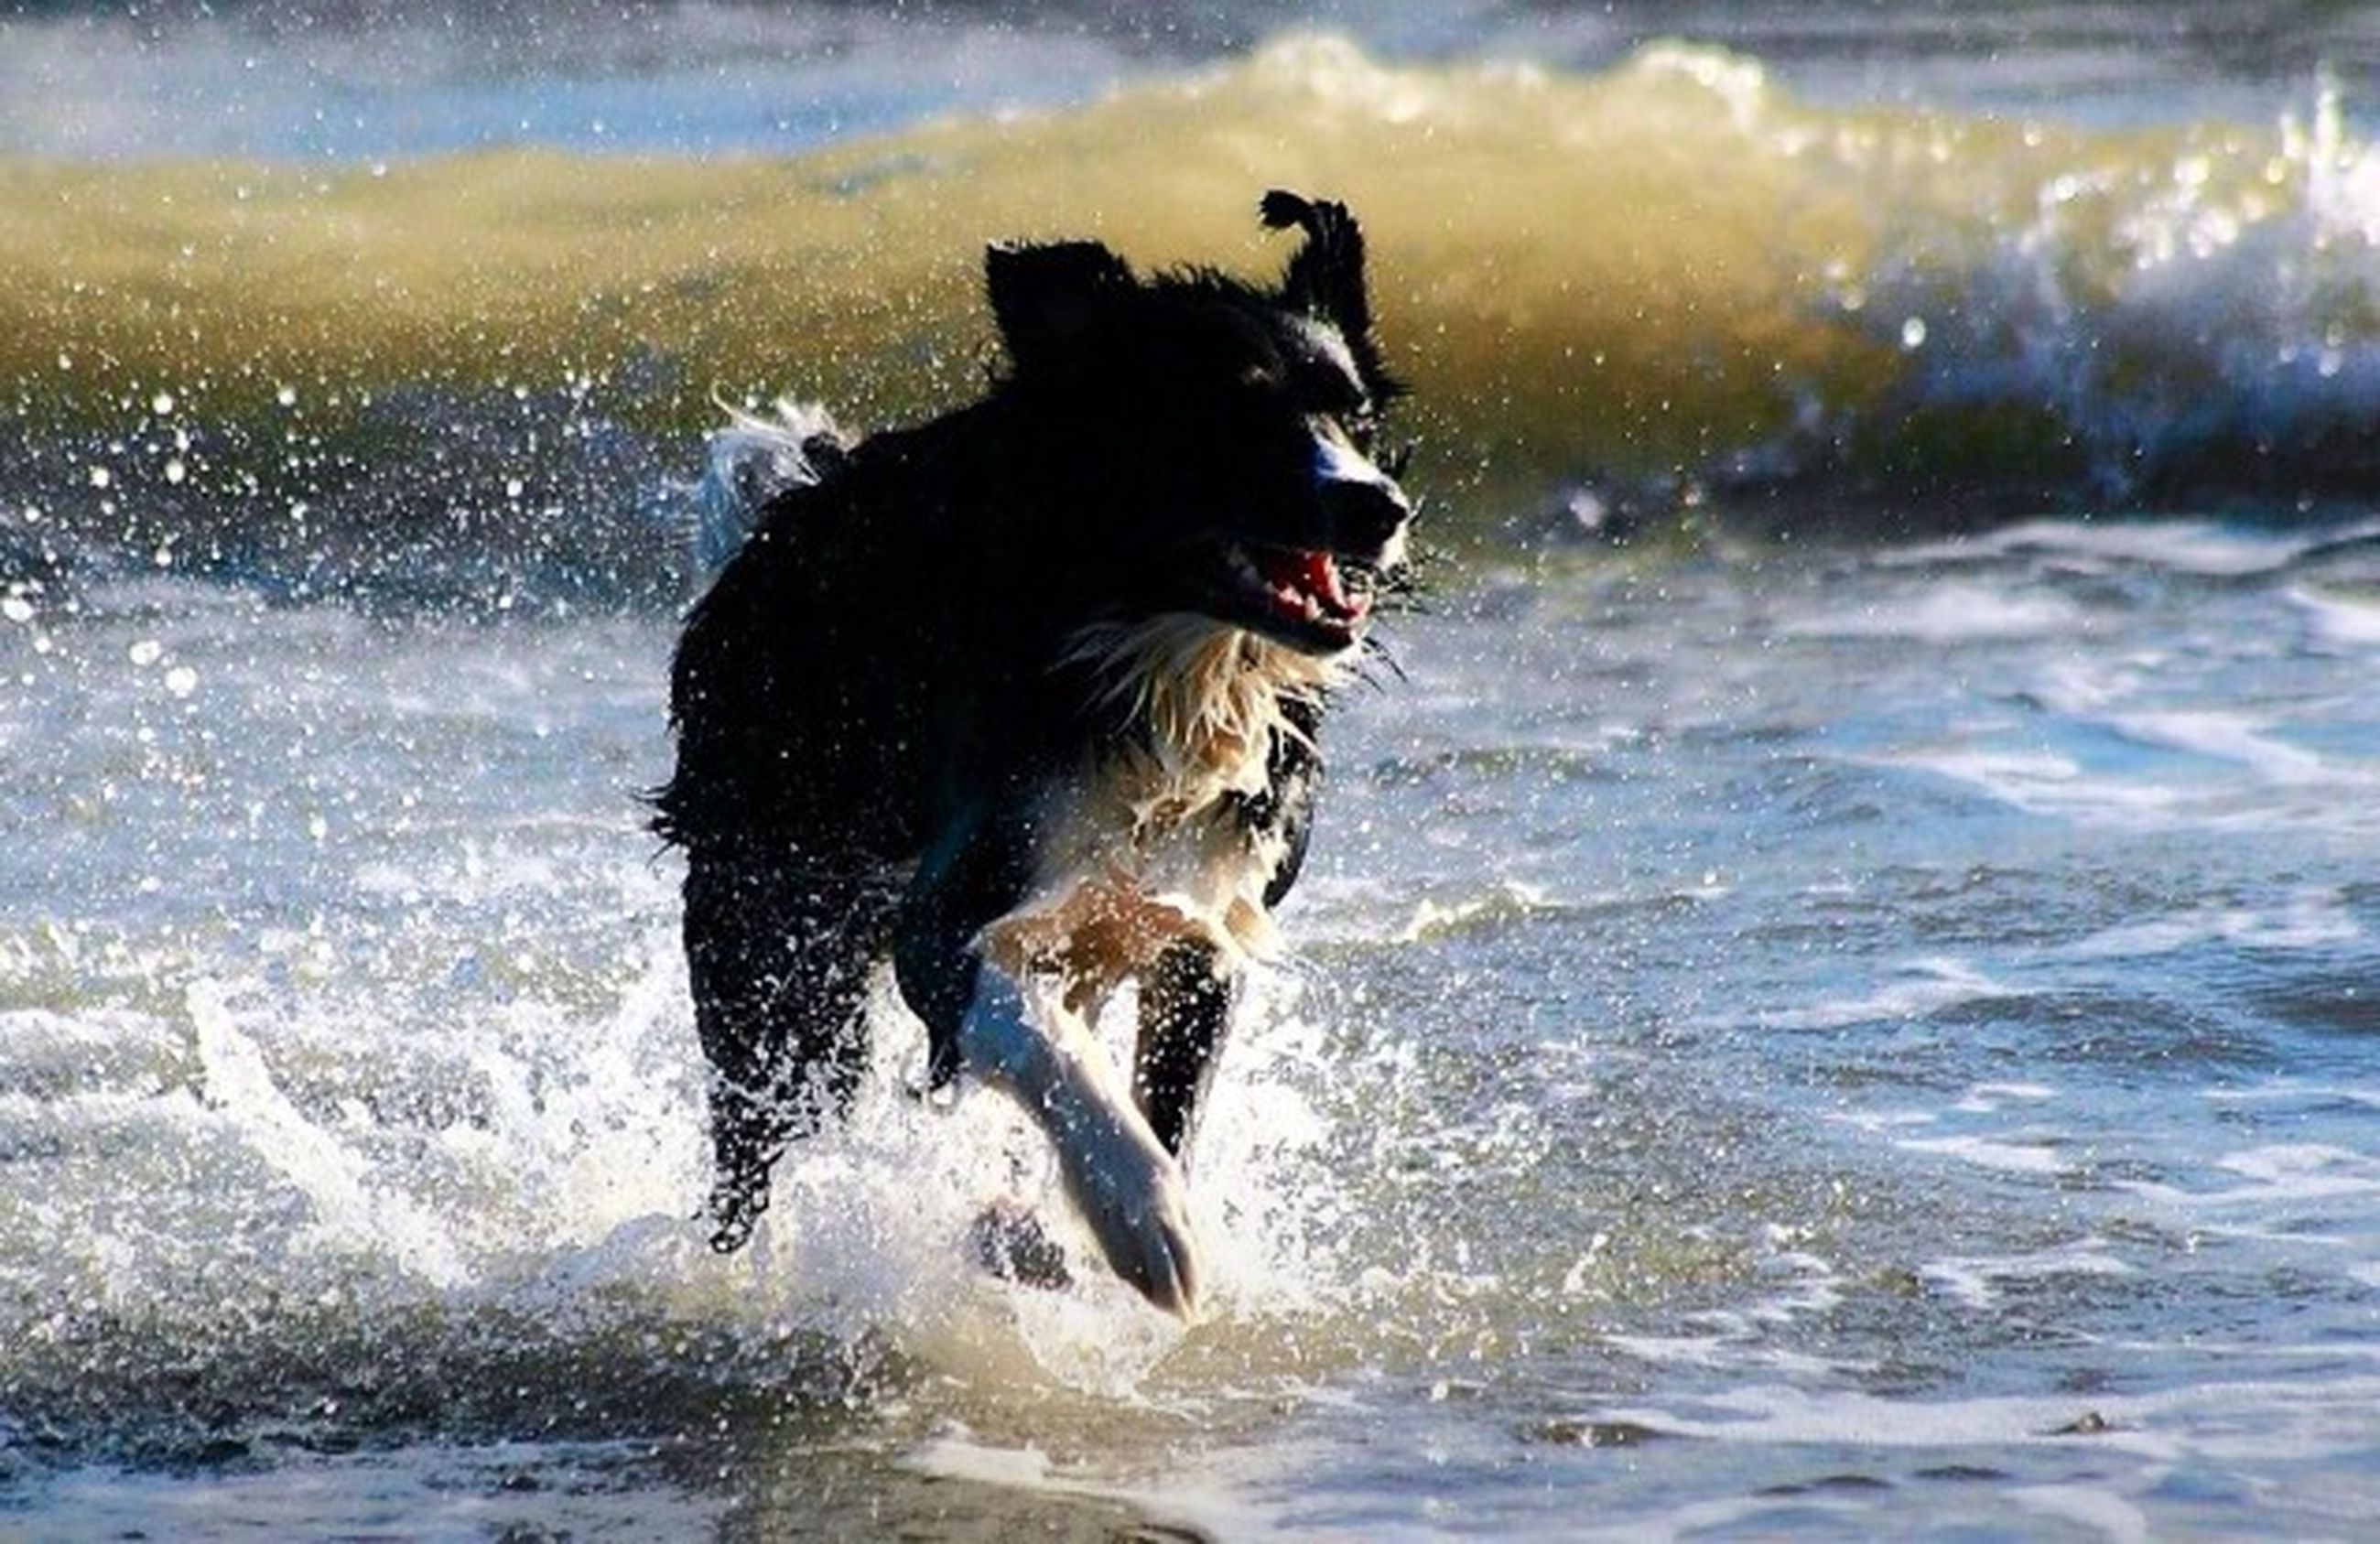 animal themes, water, one animal, dog, splashing, pets, mammal, domestic animals, motion, running, wave, waterfront, sea, surf, wet, focus on foreground, nature, black color, outdoors, day